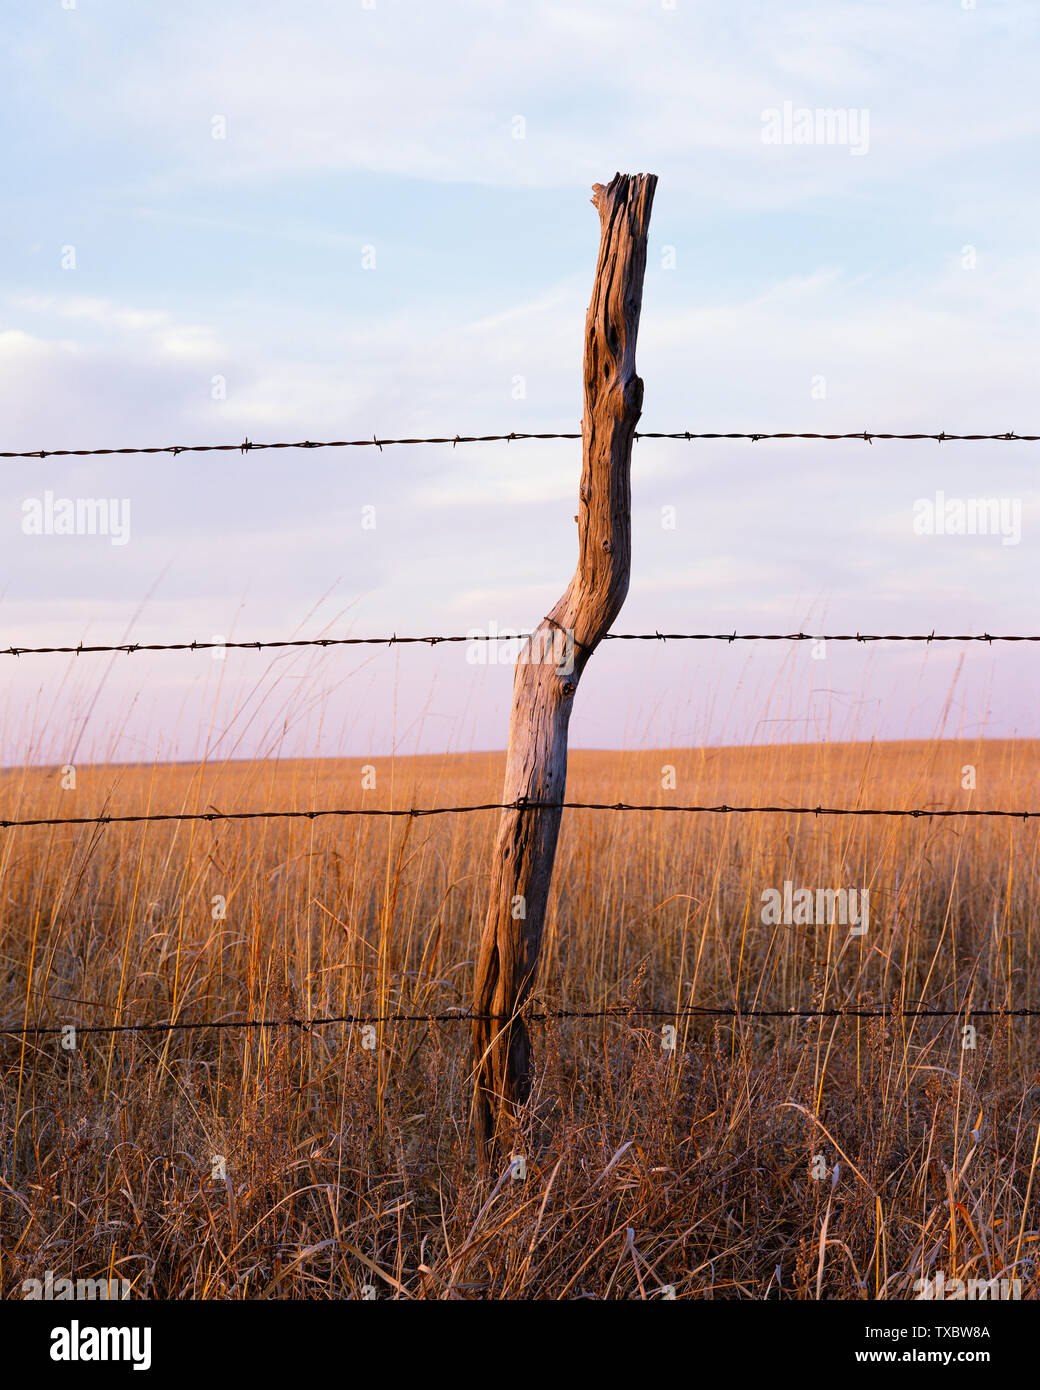 Fencepost with barbed wire at dusk on the Kansas prairie - Stock Image